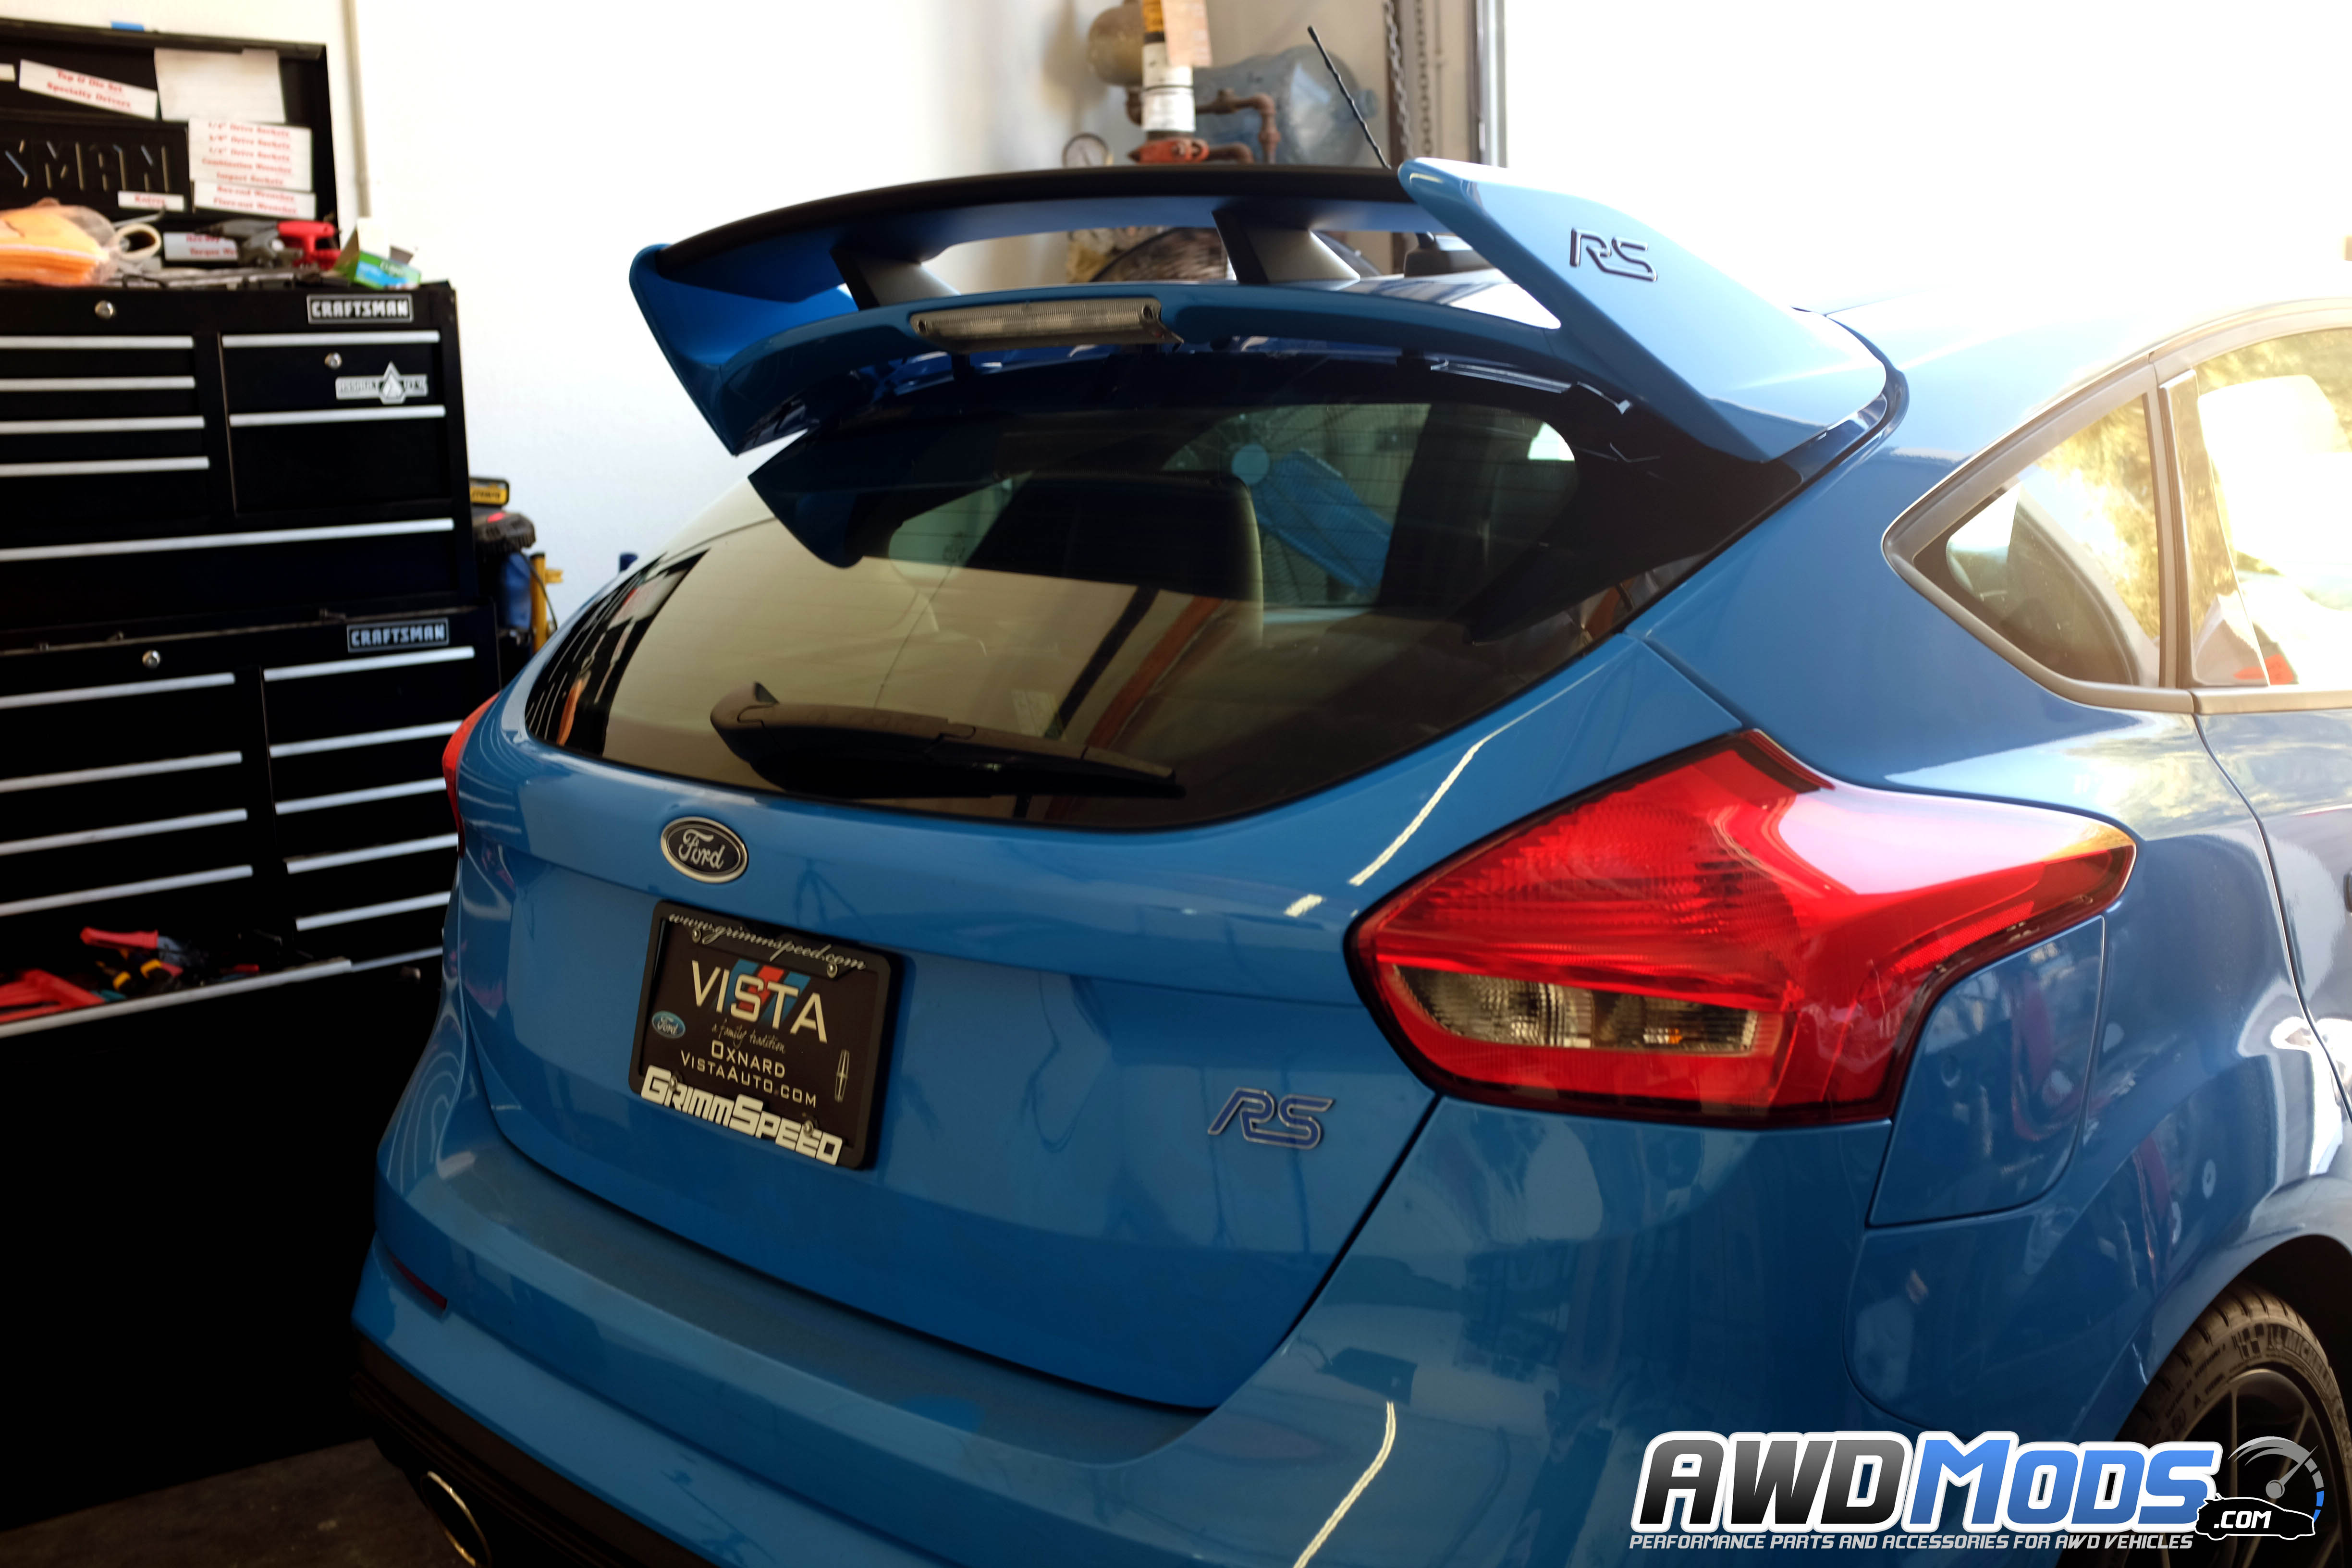 ... Agency Power Rear Spoiler Riser for the Ford Focus RS / ST ...